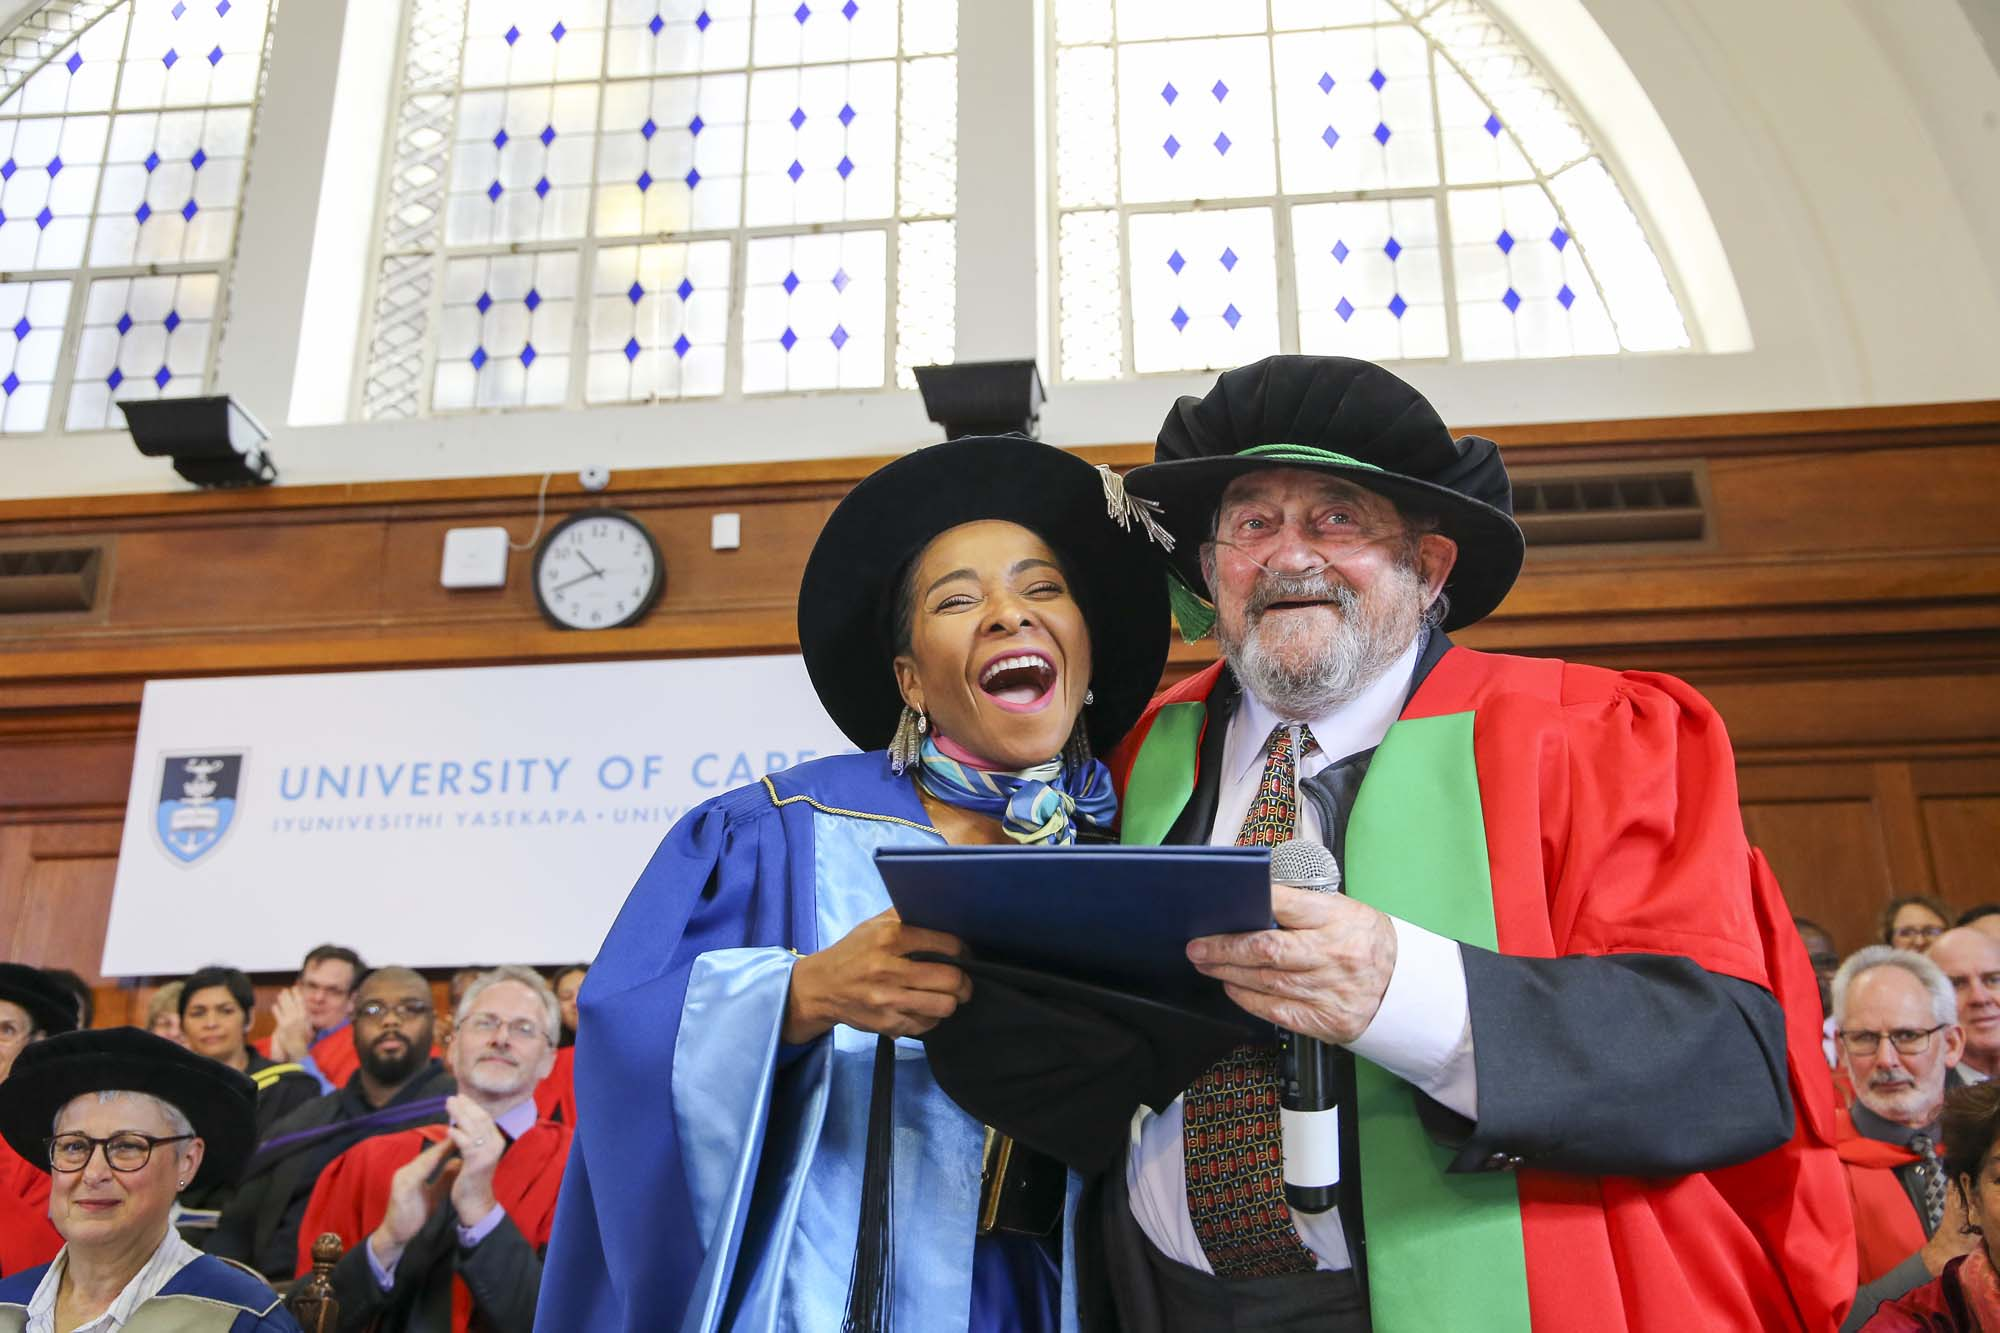 UCT awarded a Doctor of Science in Engineering (honoris causa) to Denis Goldberg at a graduation ceremony on 12 July in recognition of his courageous and selfless role in the anti-apartheid struggle over decades.